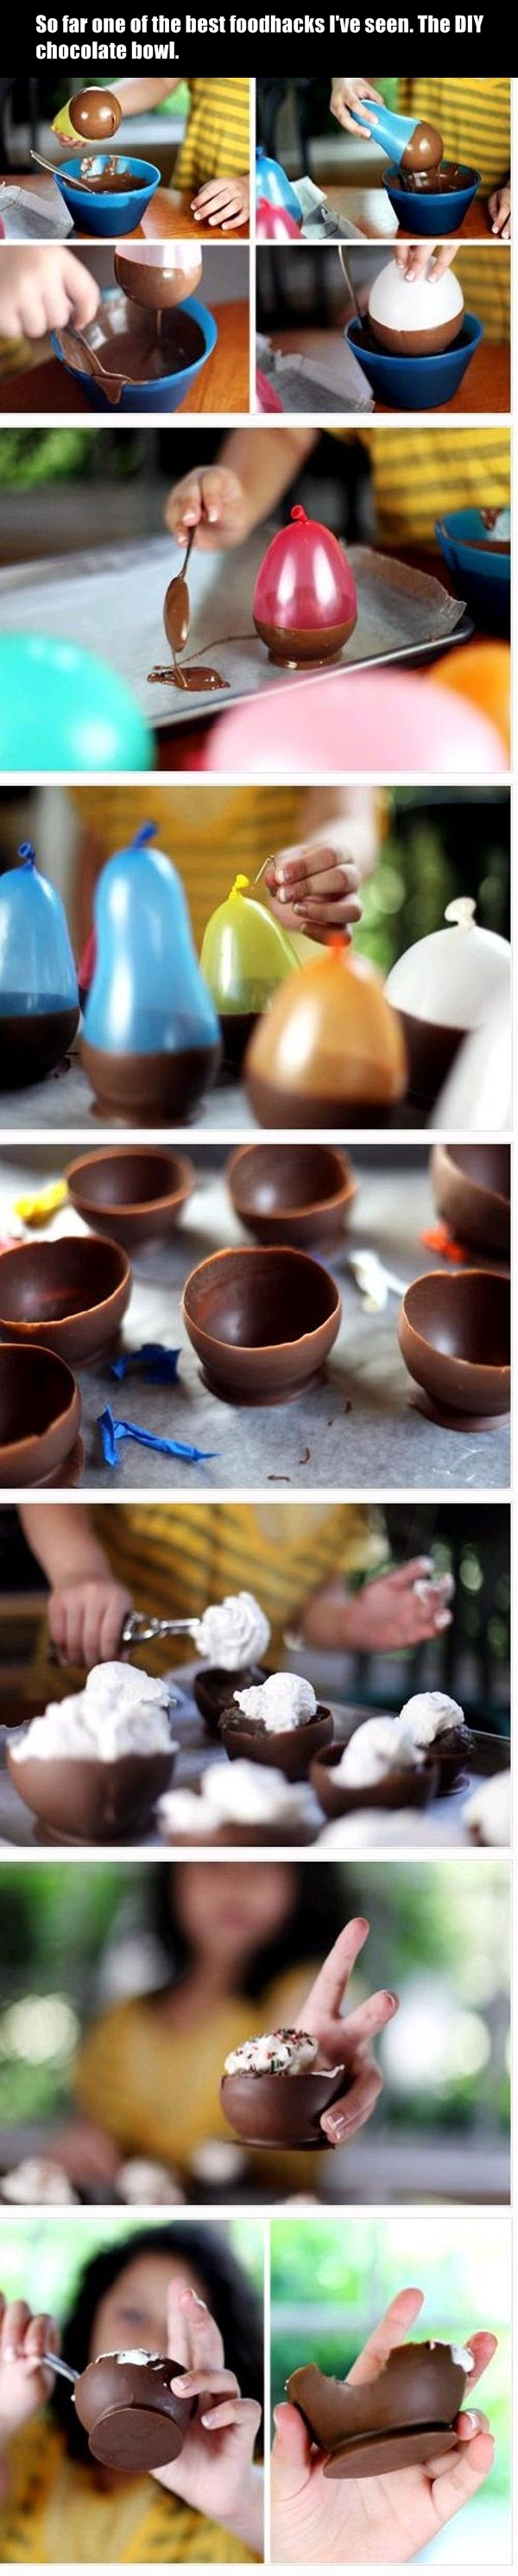 DIY Chocolate Bowls